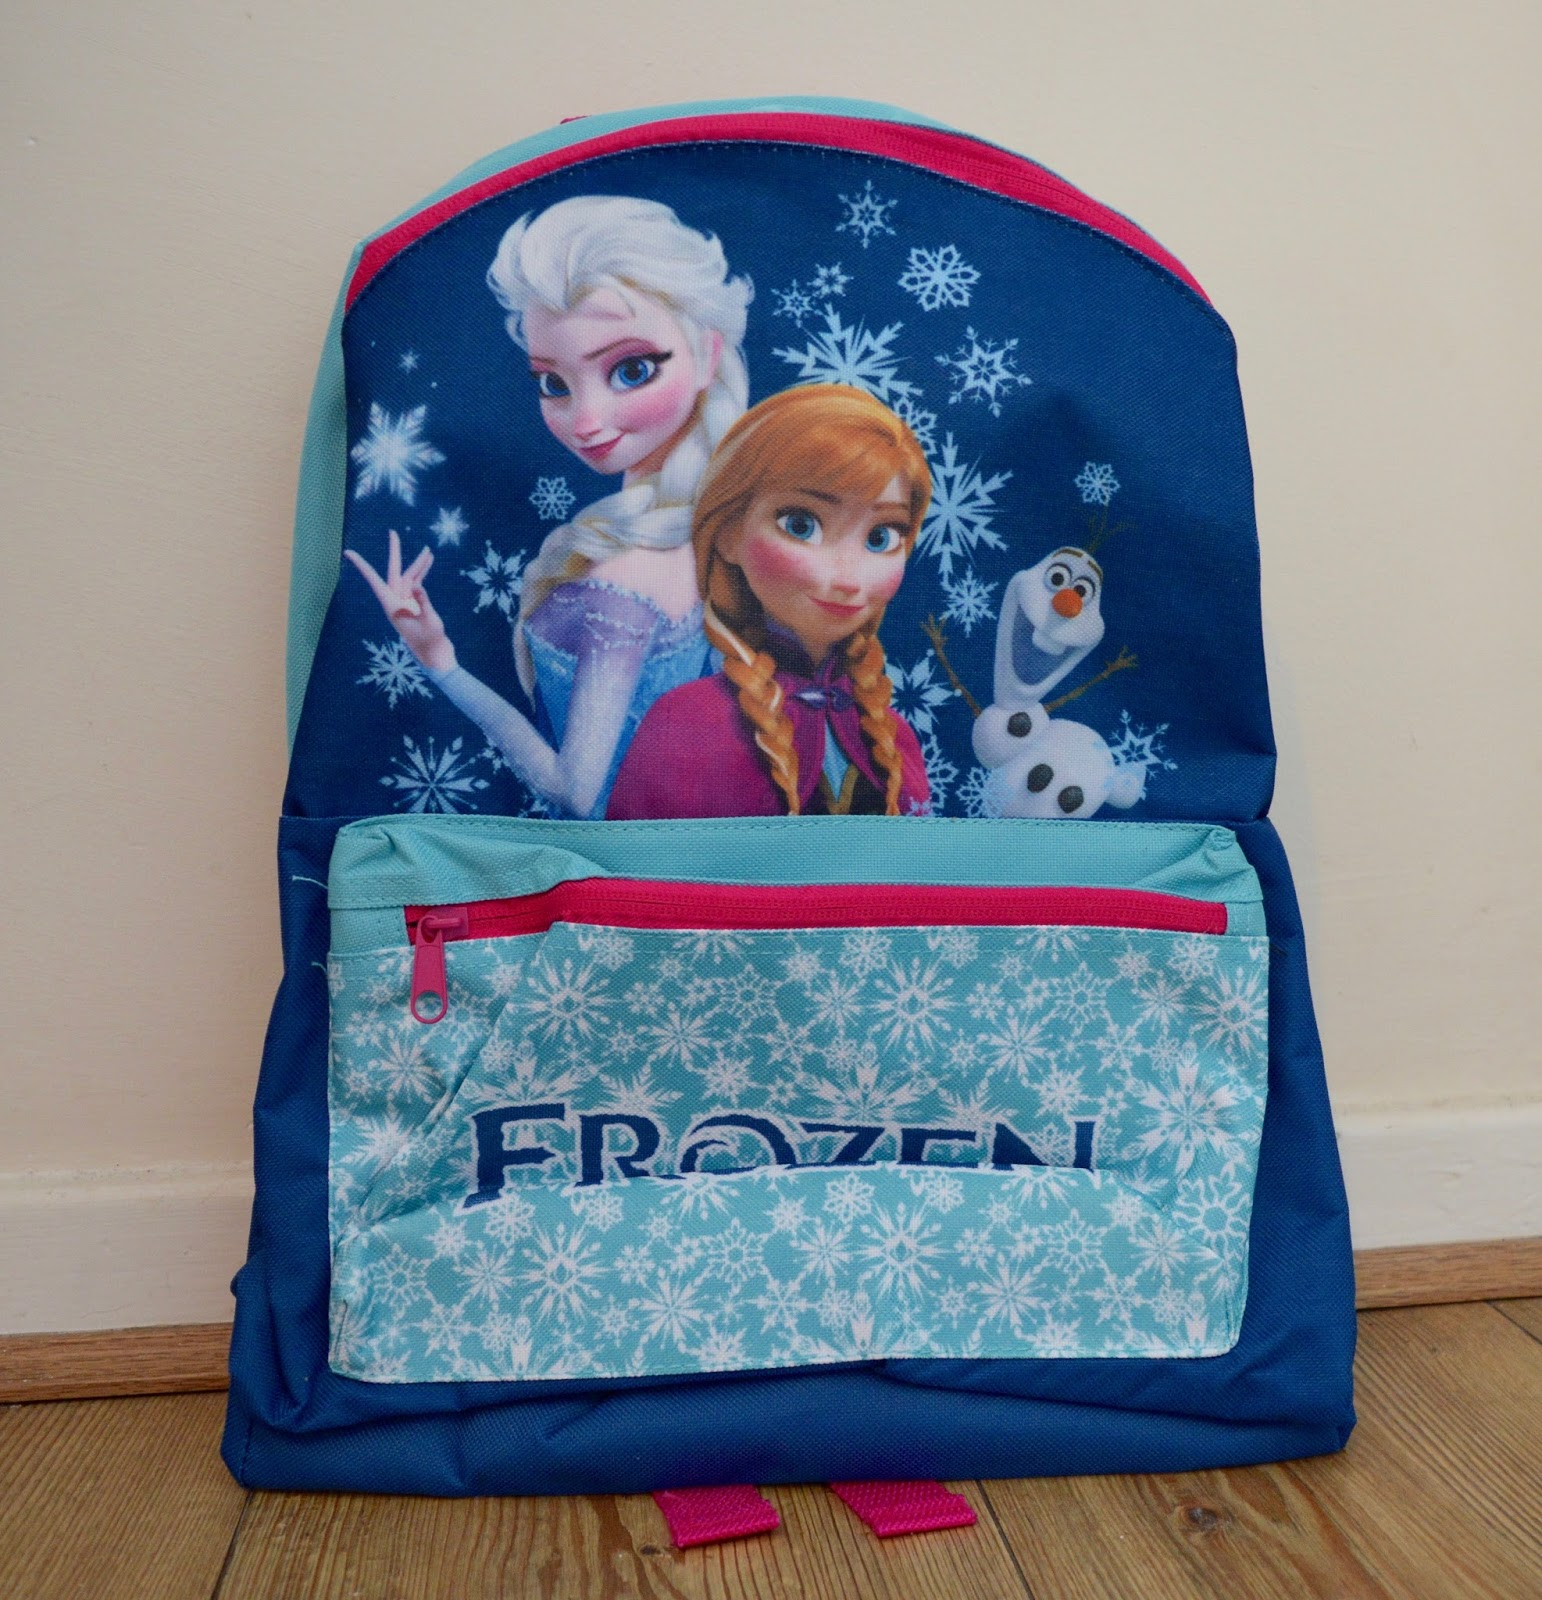 Top Tips and handy advice for surviving the school run - Frozen school bag